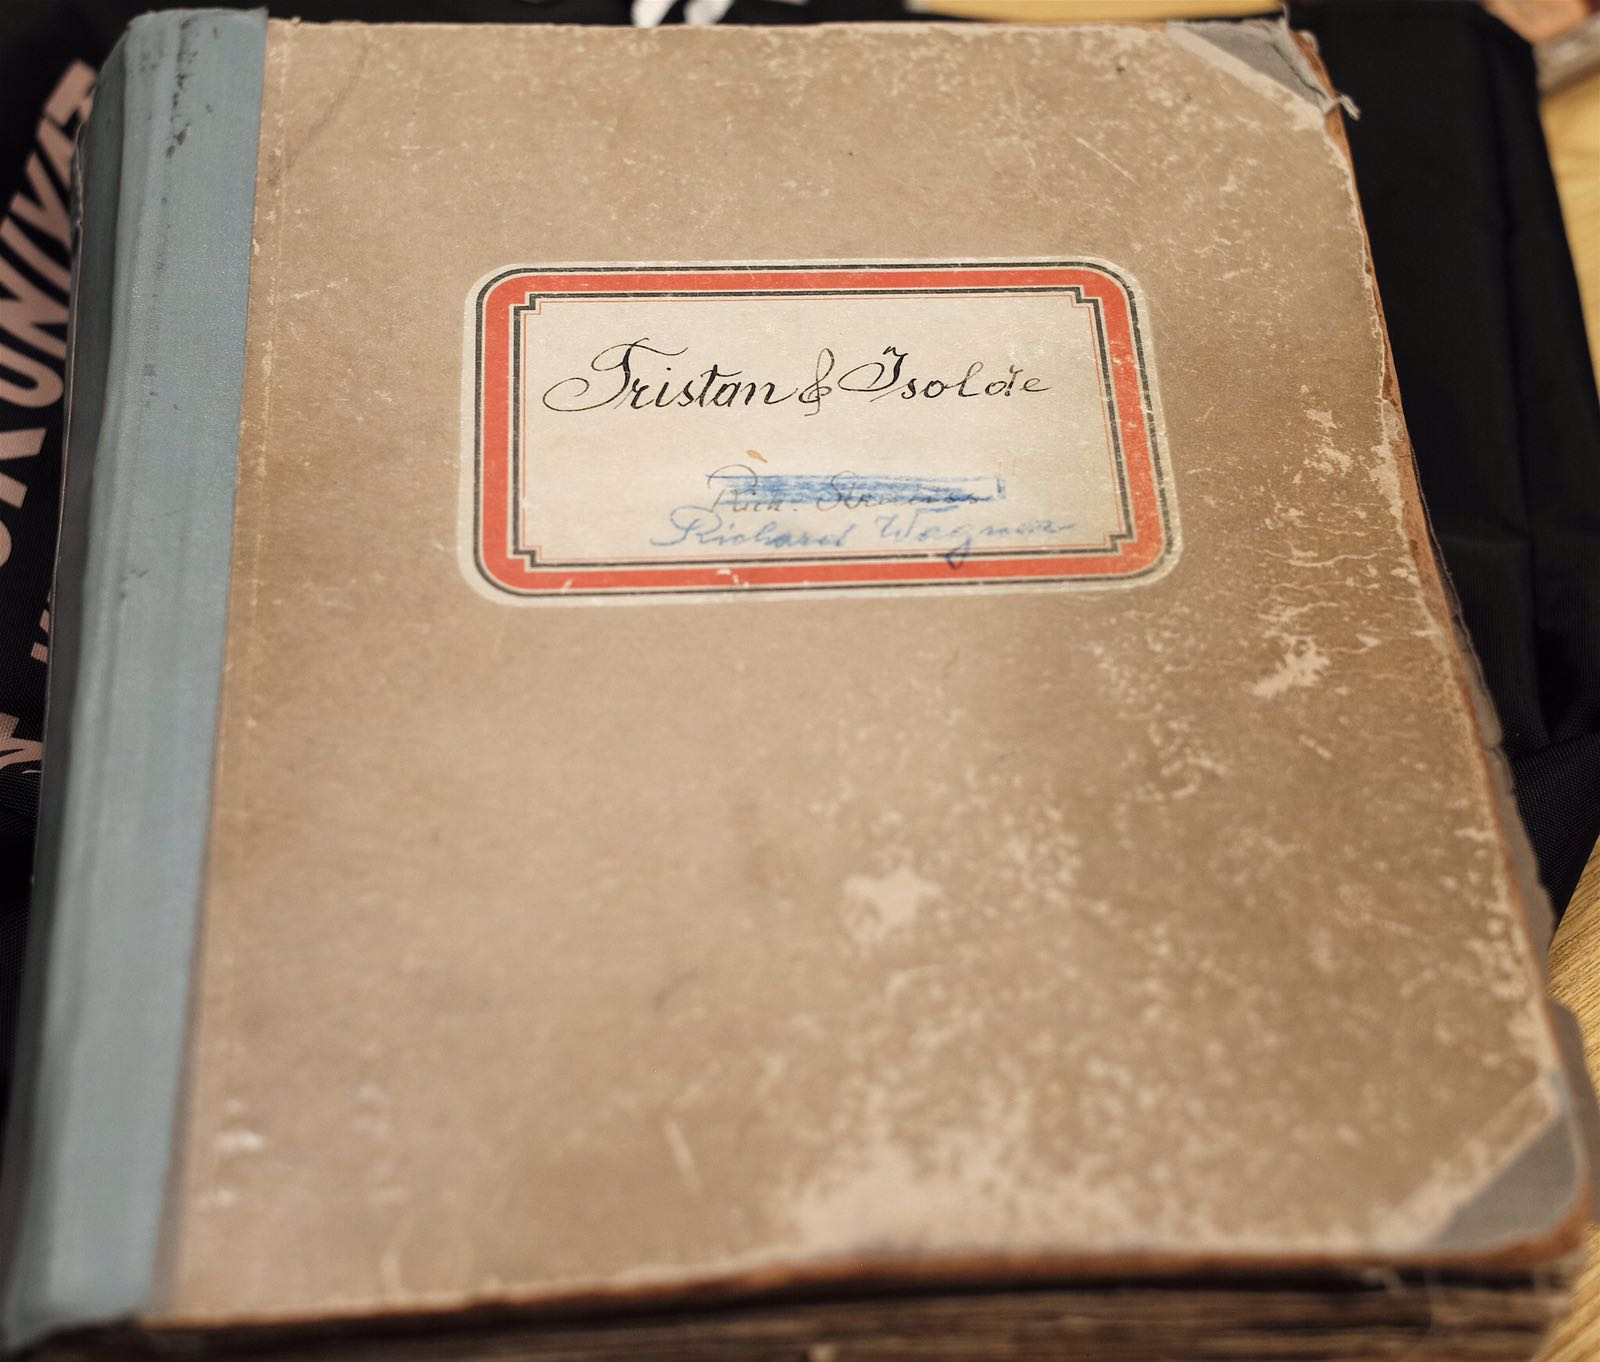 Daniel Froschauer, of the Vienna Philharmonic and Vienna State Opera, generously provided photos of Mahler's score.